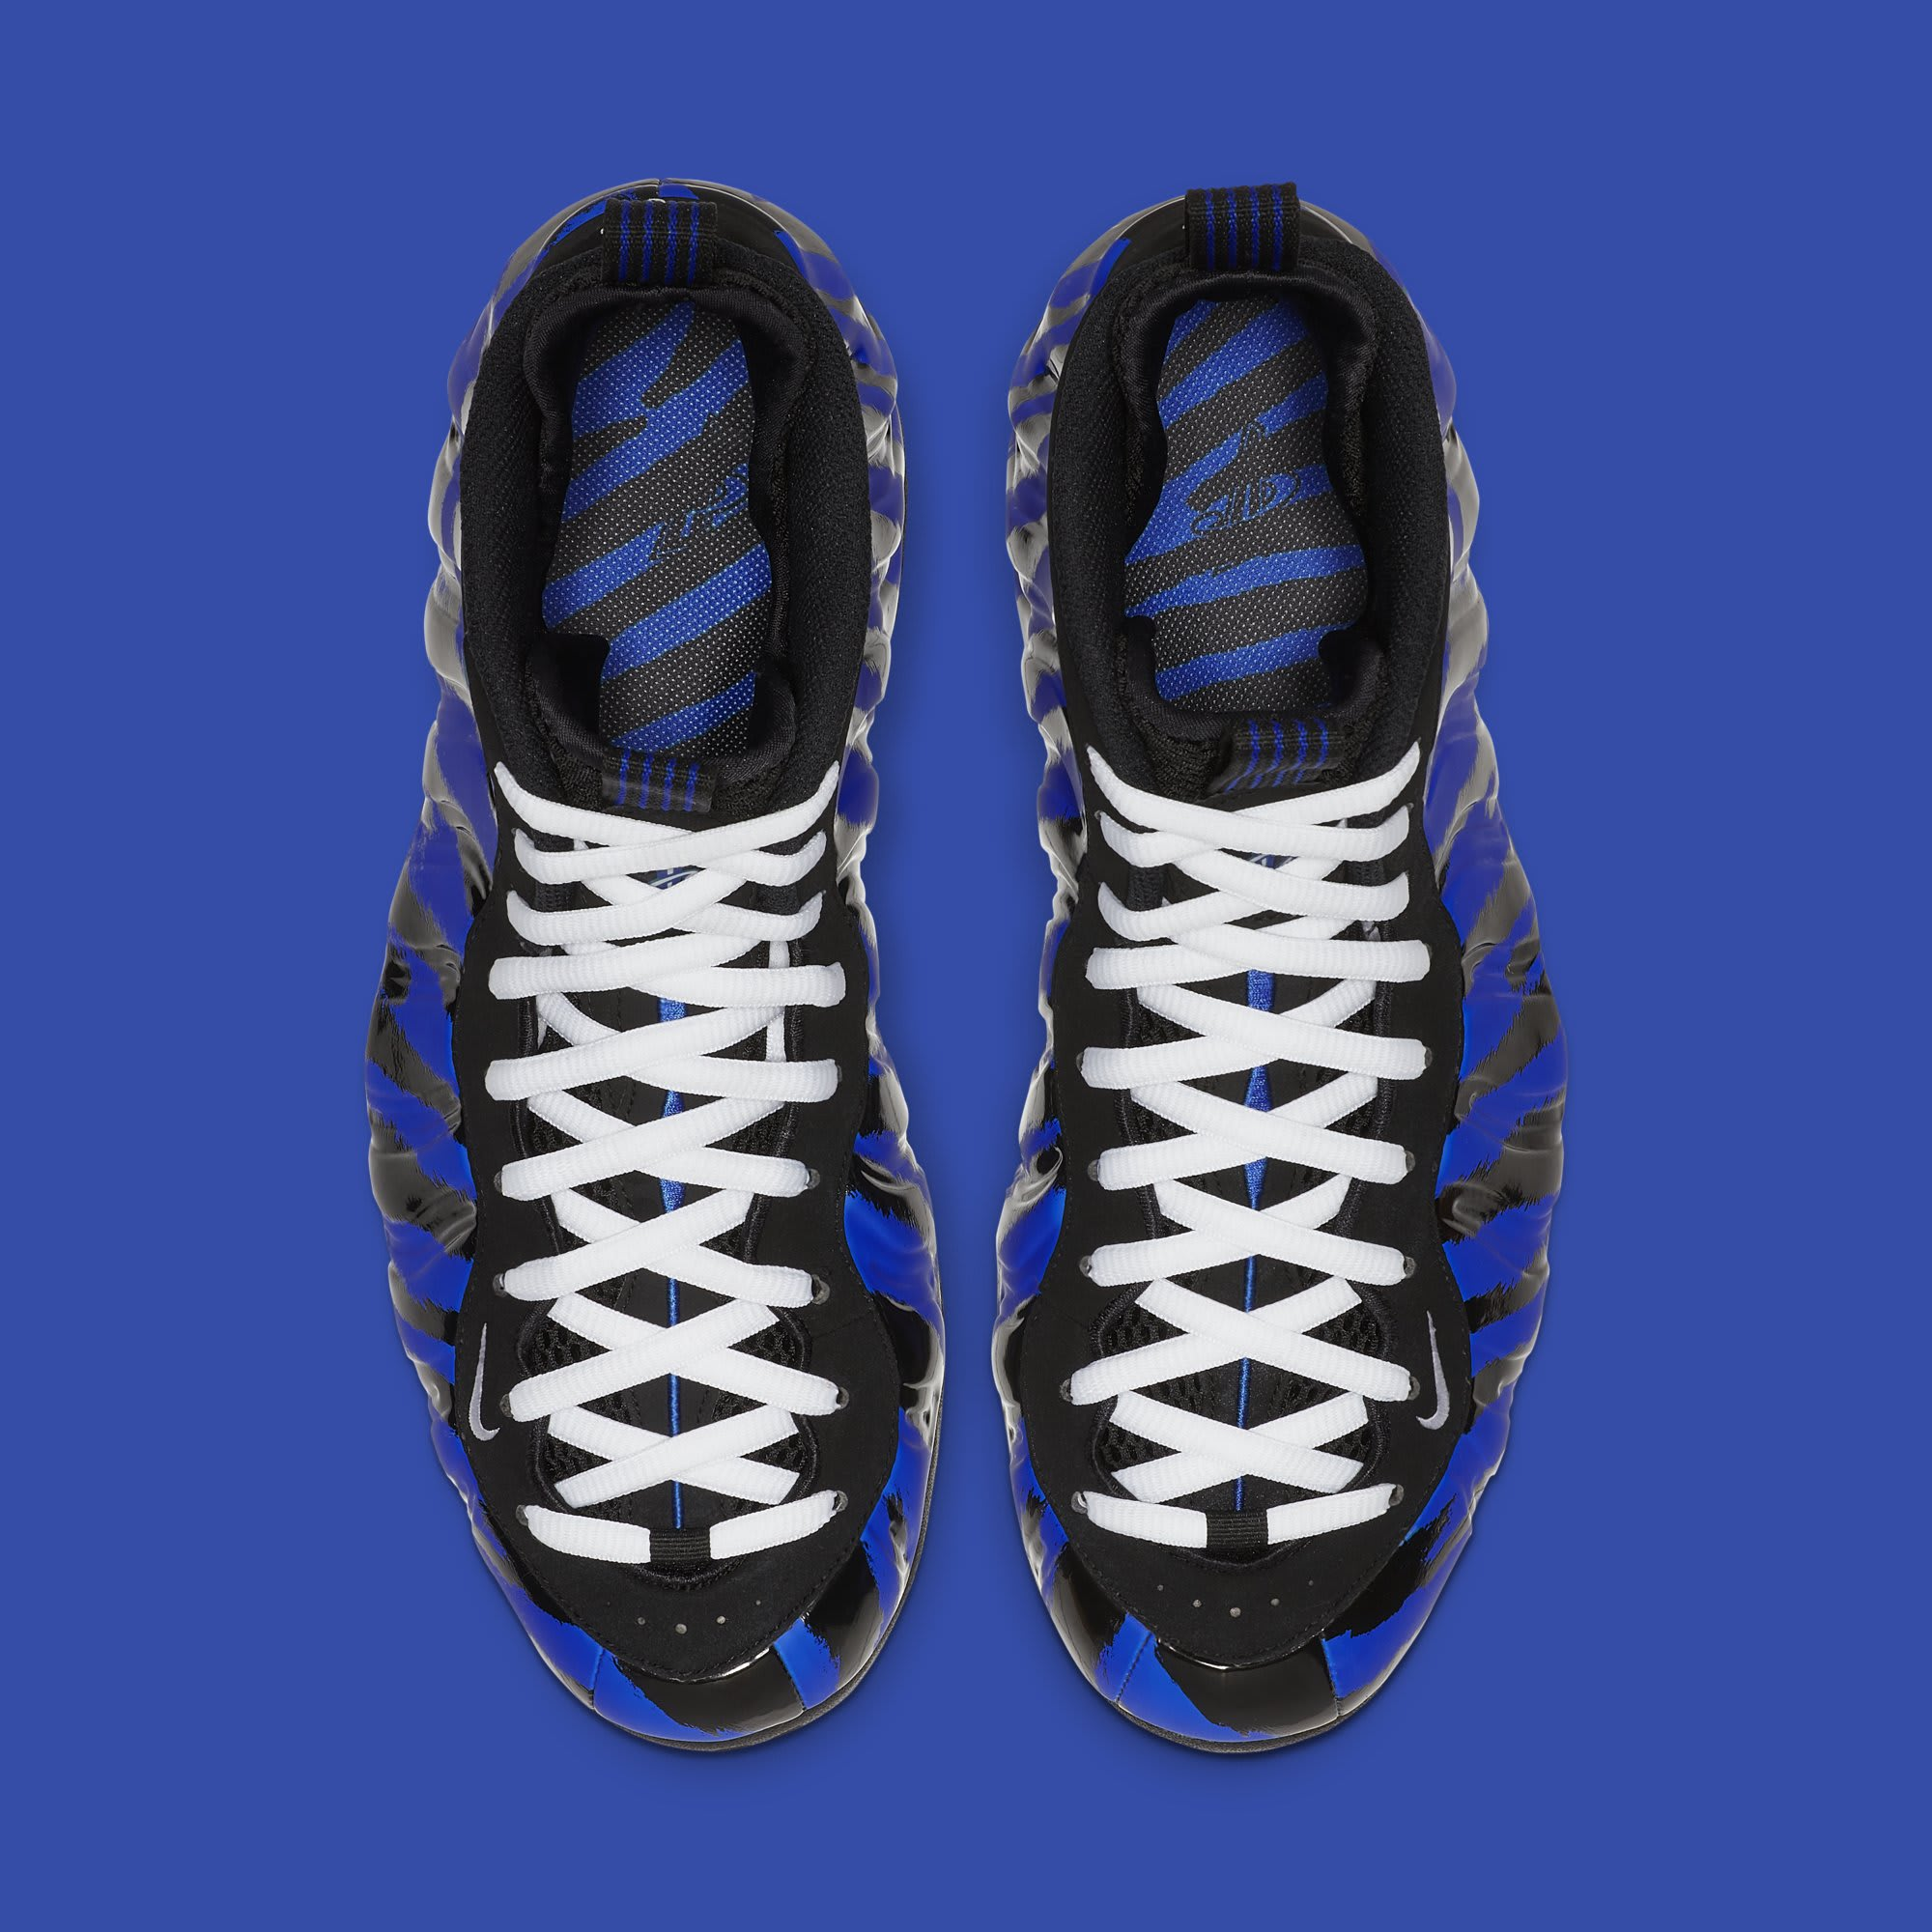 27584cd6ffc Image via Nike Nike Air Foamposite One  Tiger Stripes  BV8161-400 (Top)